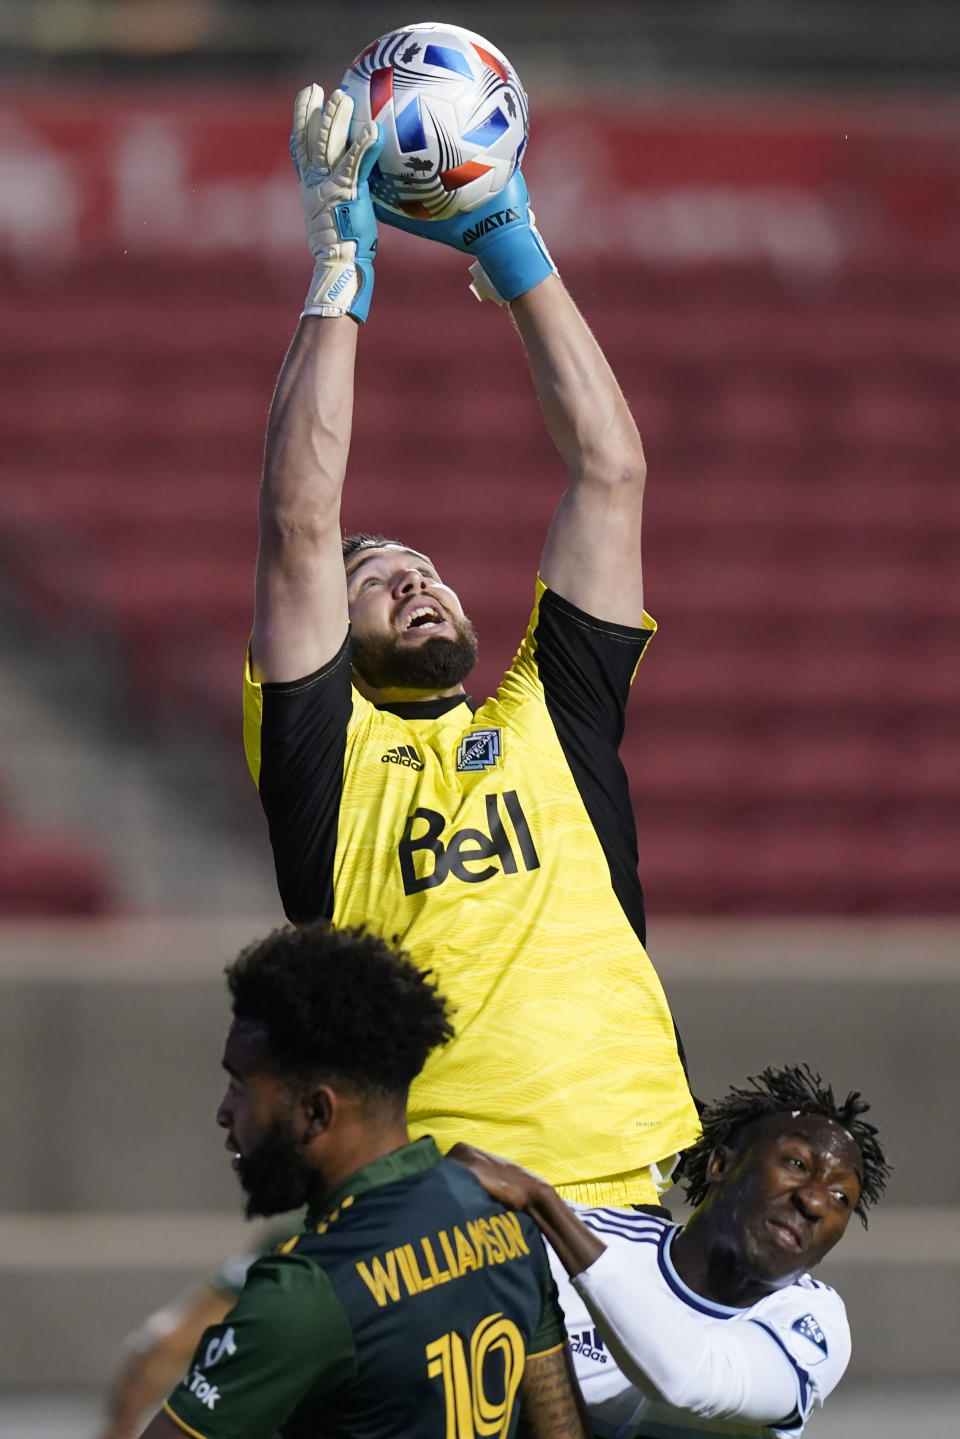 Vancouver Whitecaps goalkeeper Maxime Crepeau, rear, makes a save as teammate Janio Bikel, right, defends against Portland Timbers forward Eryk Williamson (19) in the first half during an MLS soccer game Sunday, April 18, 2021, in Sandy, Utah. (AP Photo/Rick Bowmer)